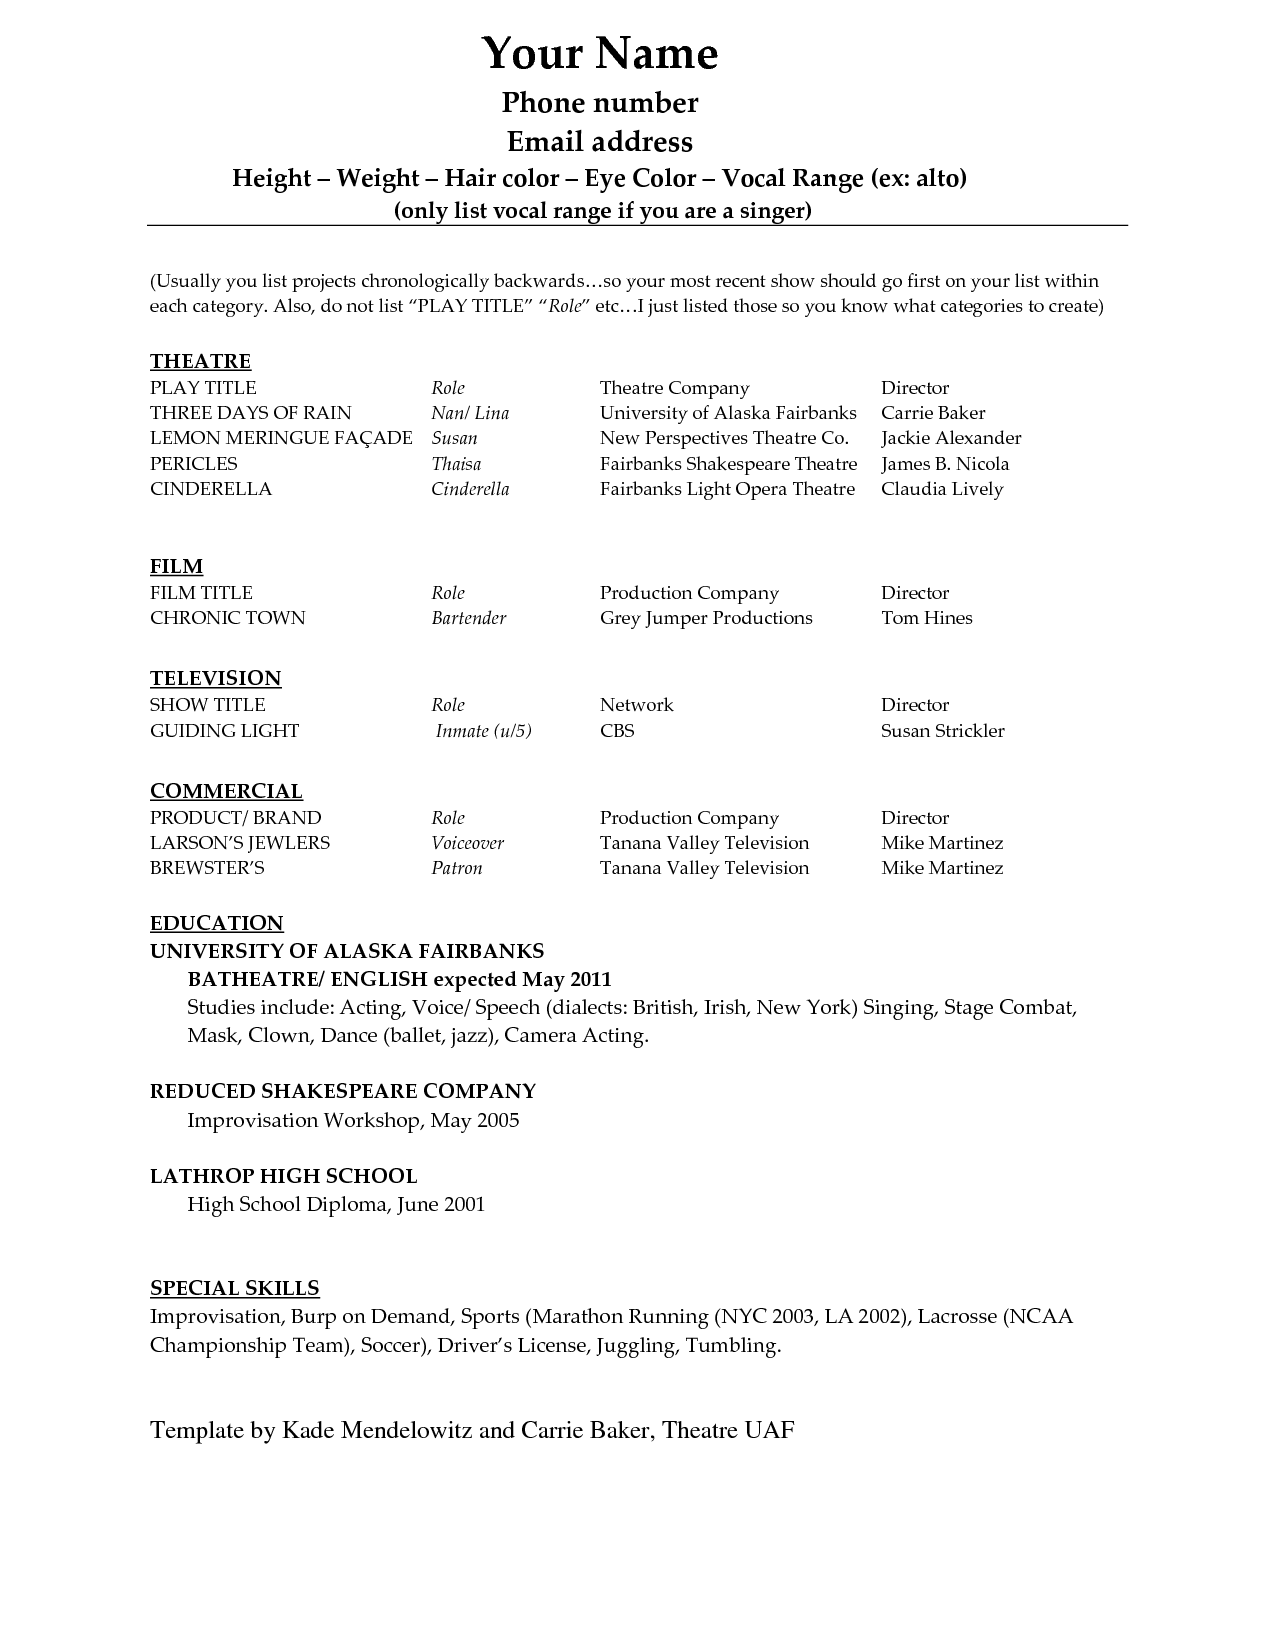 Free Resumes Templates To Download Gorgeous Acting Resume Template Download Free  Httpwwwresumecareer